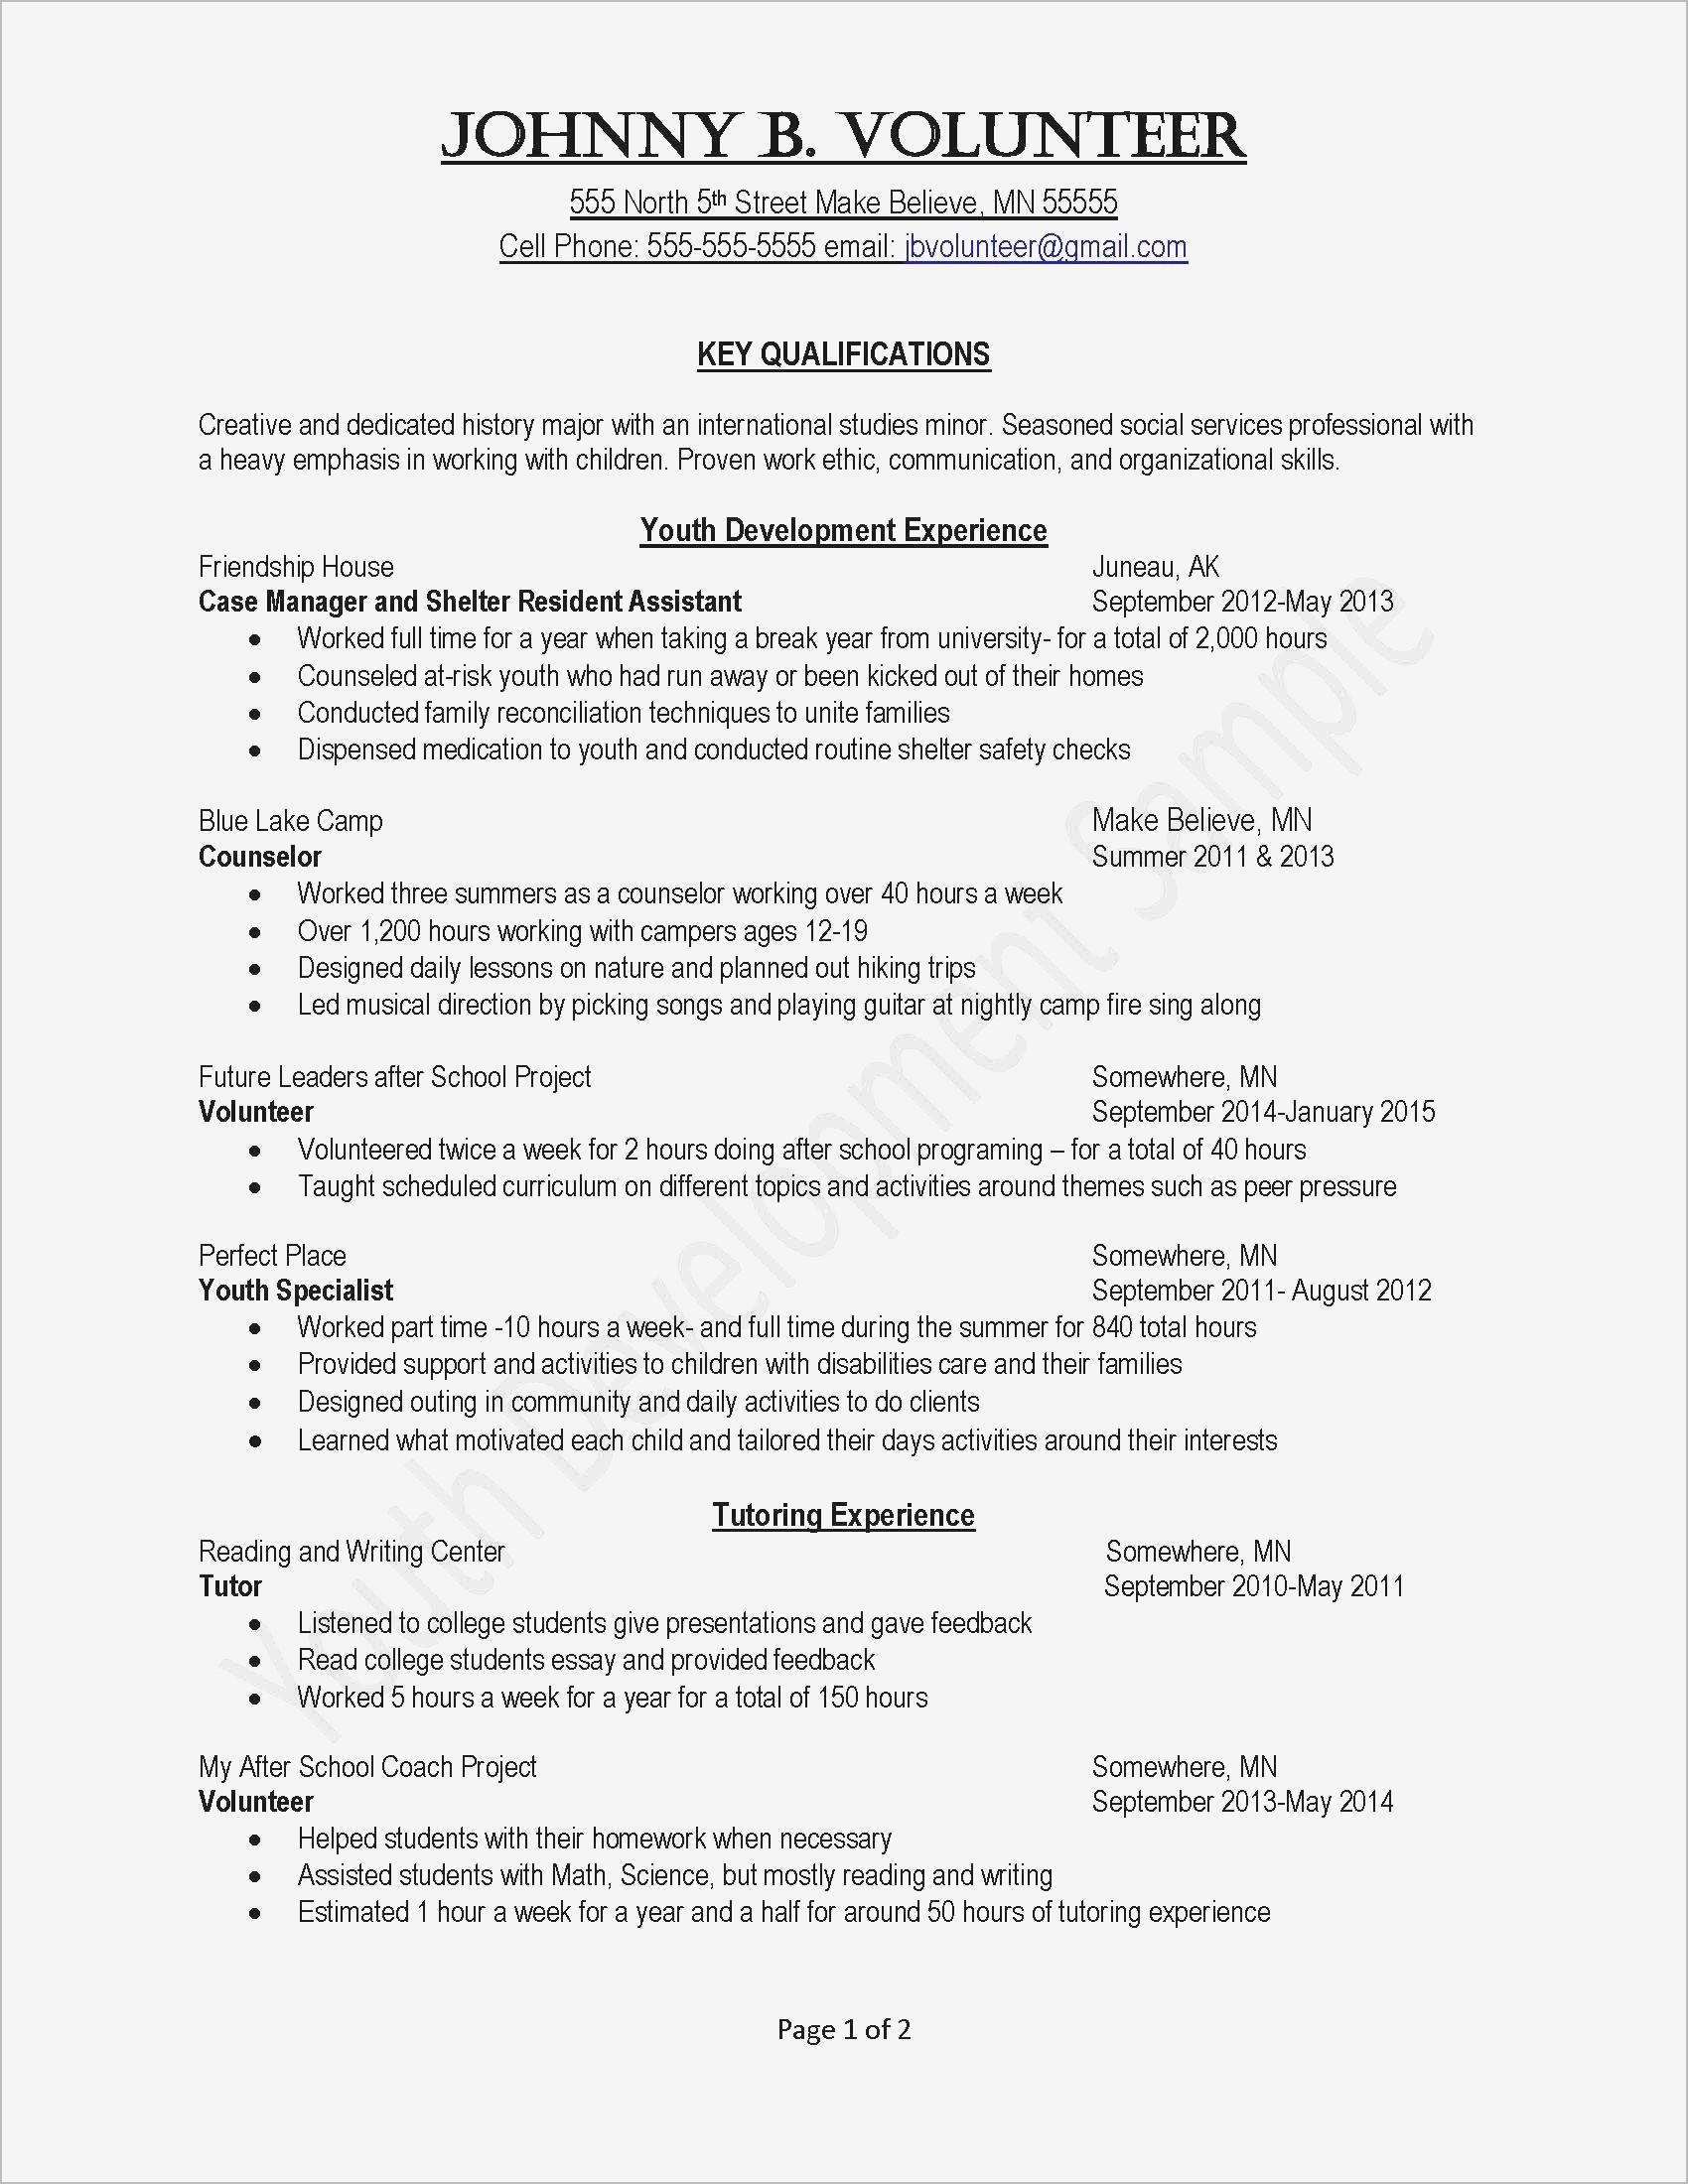 Sample Donation Letter Template - Donation Letter Template for Schools